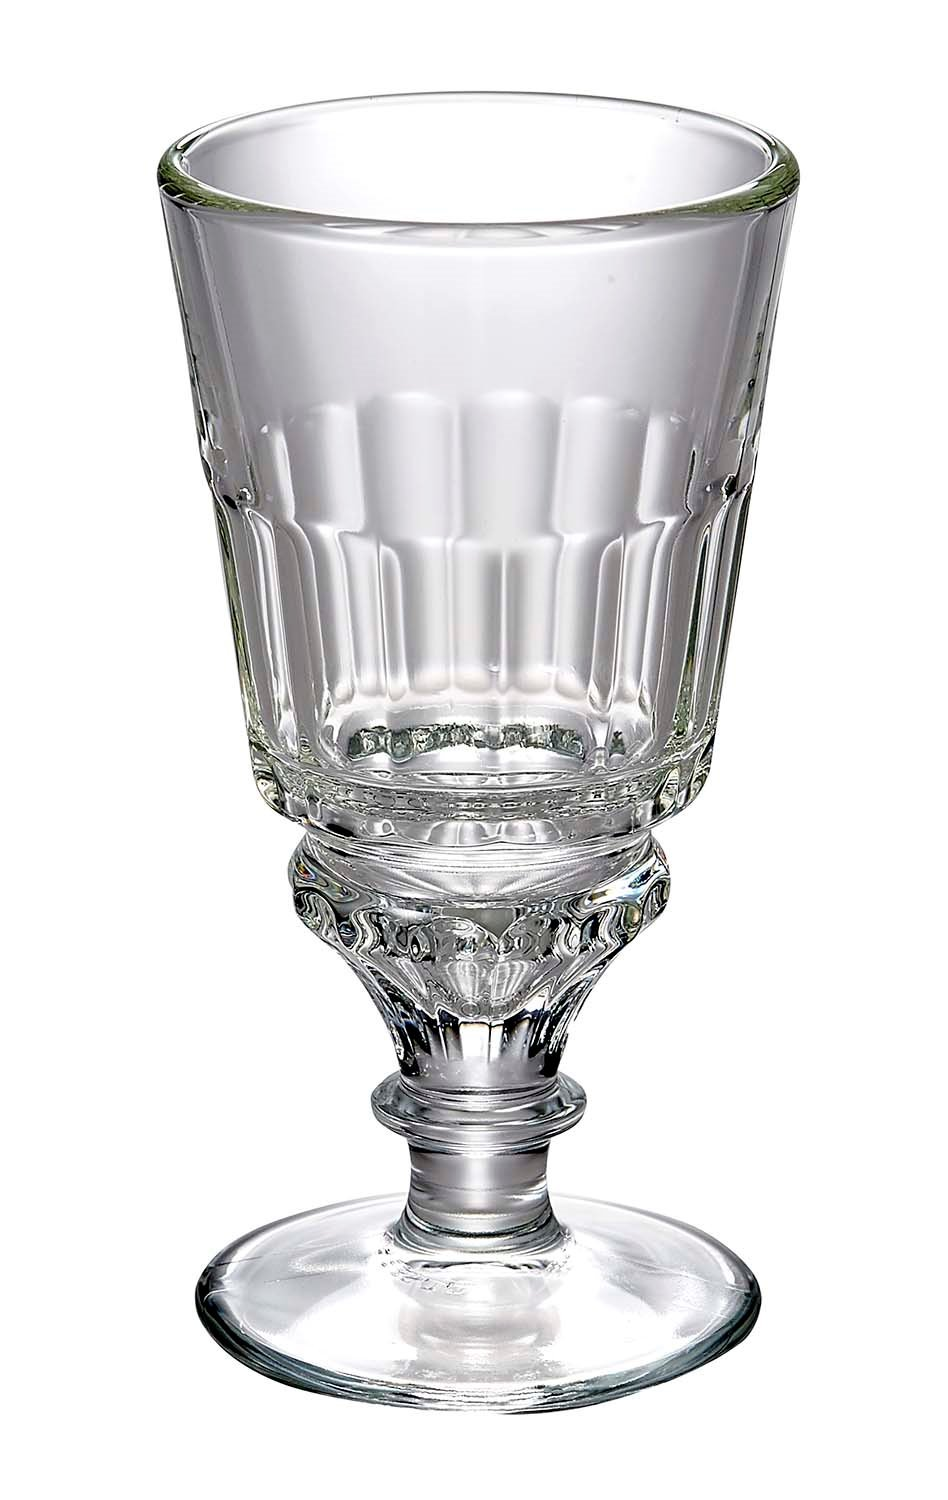 f55b173736d6 La Rochere 16cm Absinthe Stemmed Wine Glass with 25cl Capacity:  Amazon.co.uk: Kitchen & Home